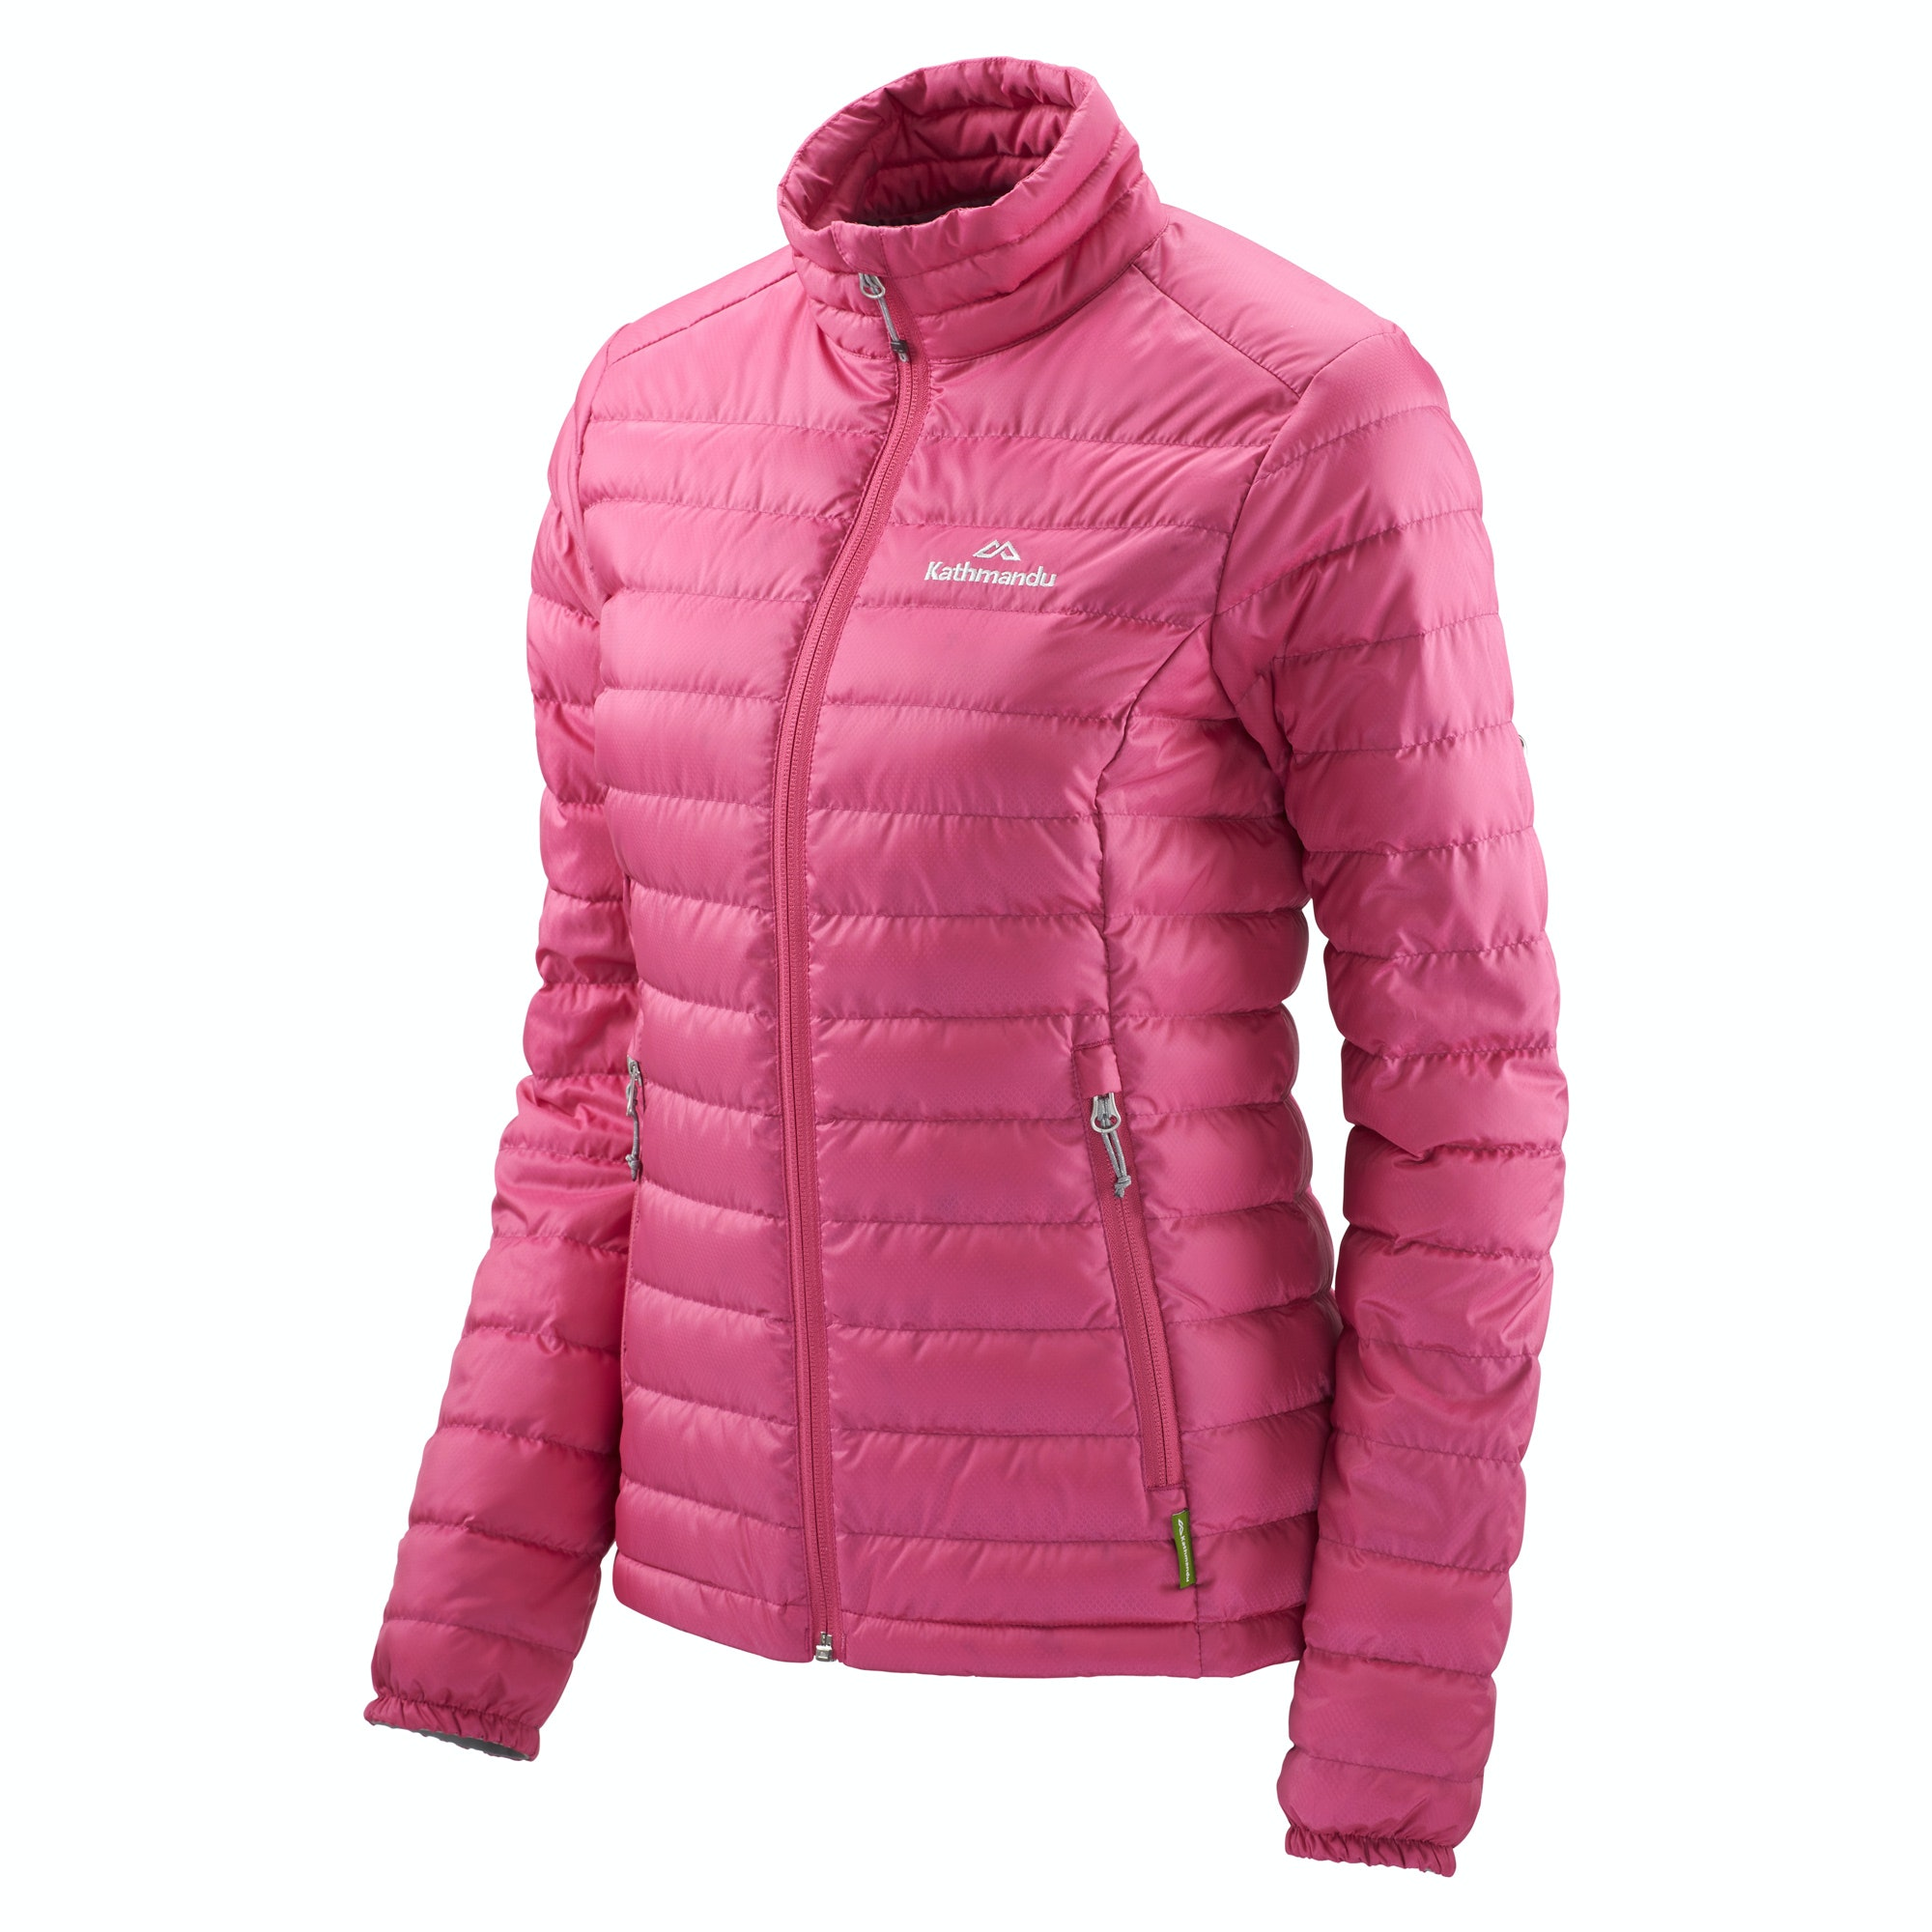 Womens lightweight jackets